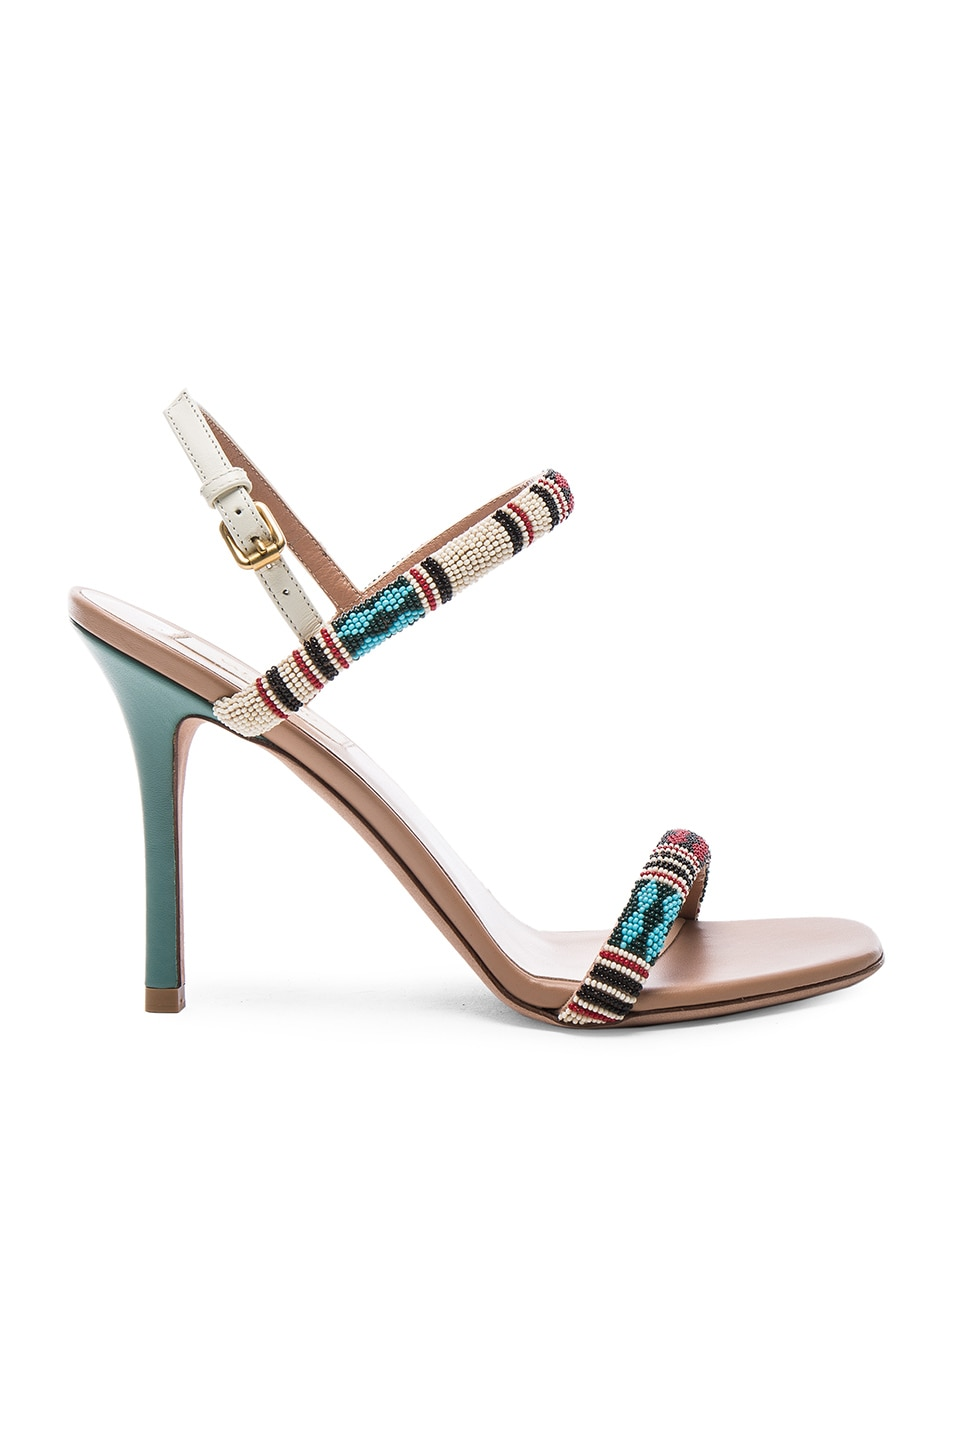 Image 1 of Valentino Glam Tribe Slingback Heels in Al Campione & Soft Noisette